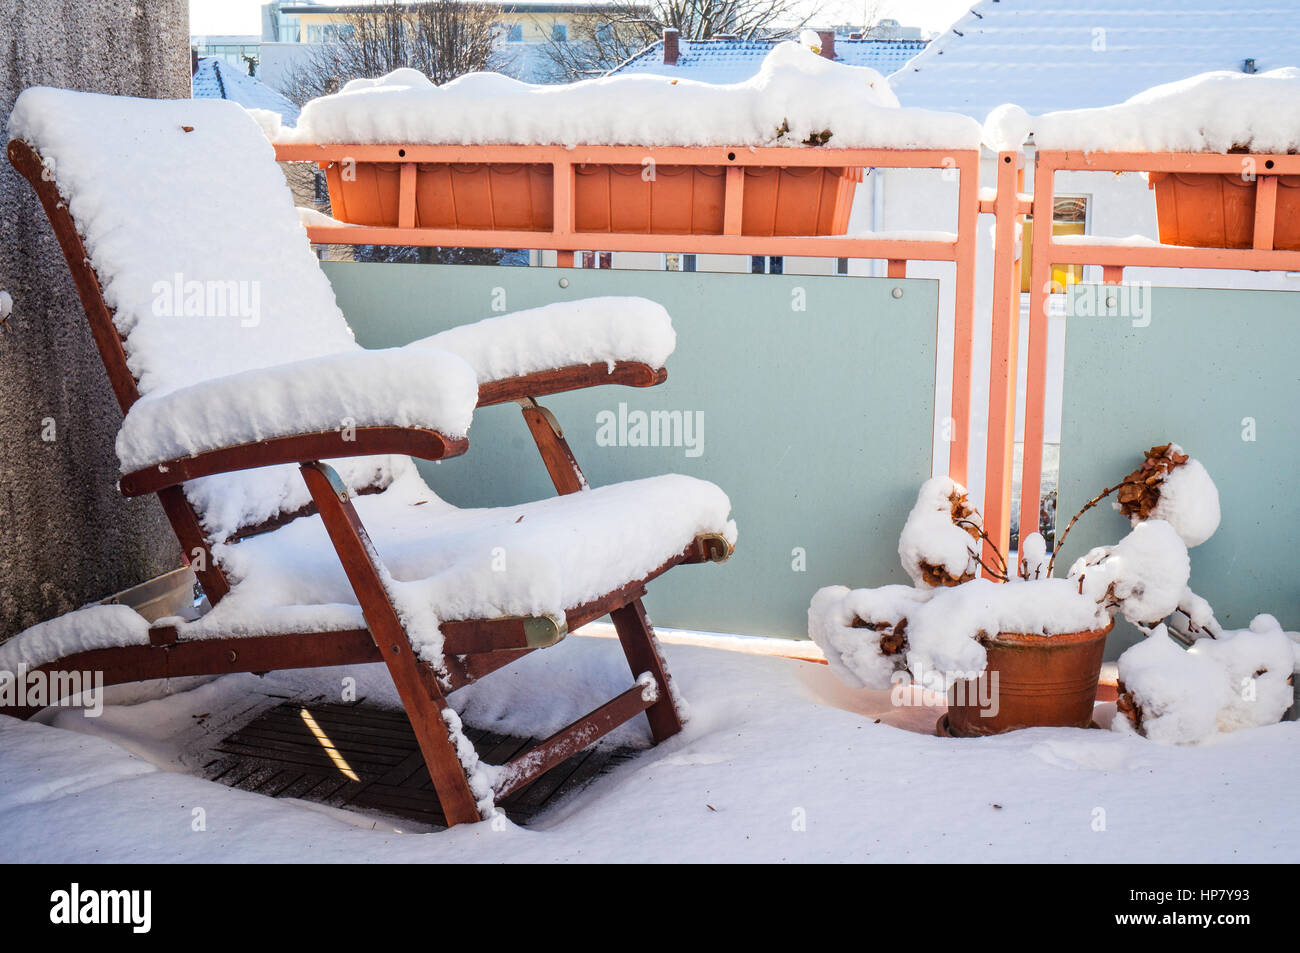 Snow covereddeck deck chair stands in winter on a snowy balcony - Stock Image